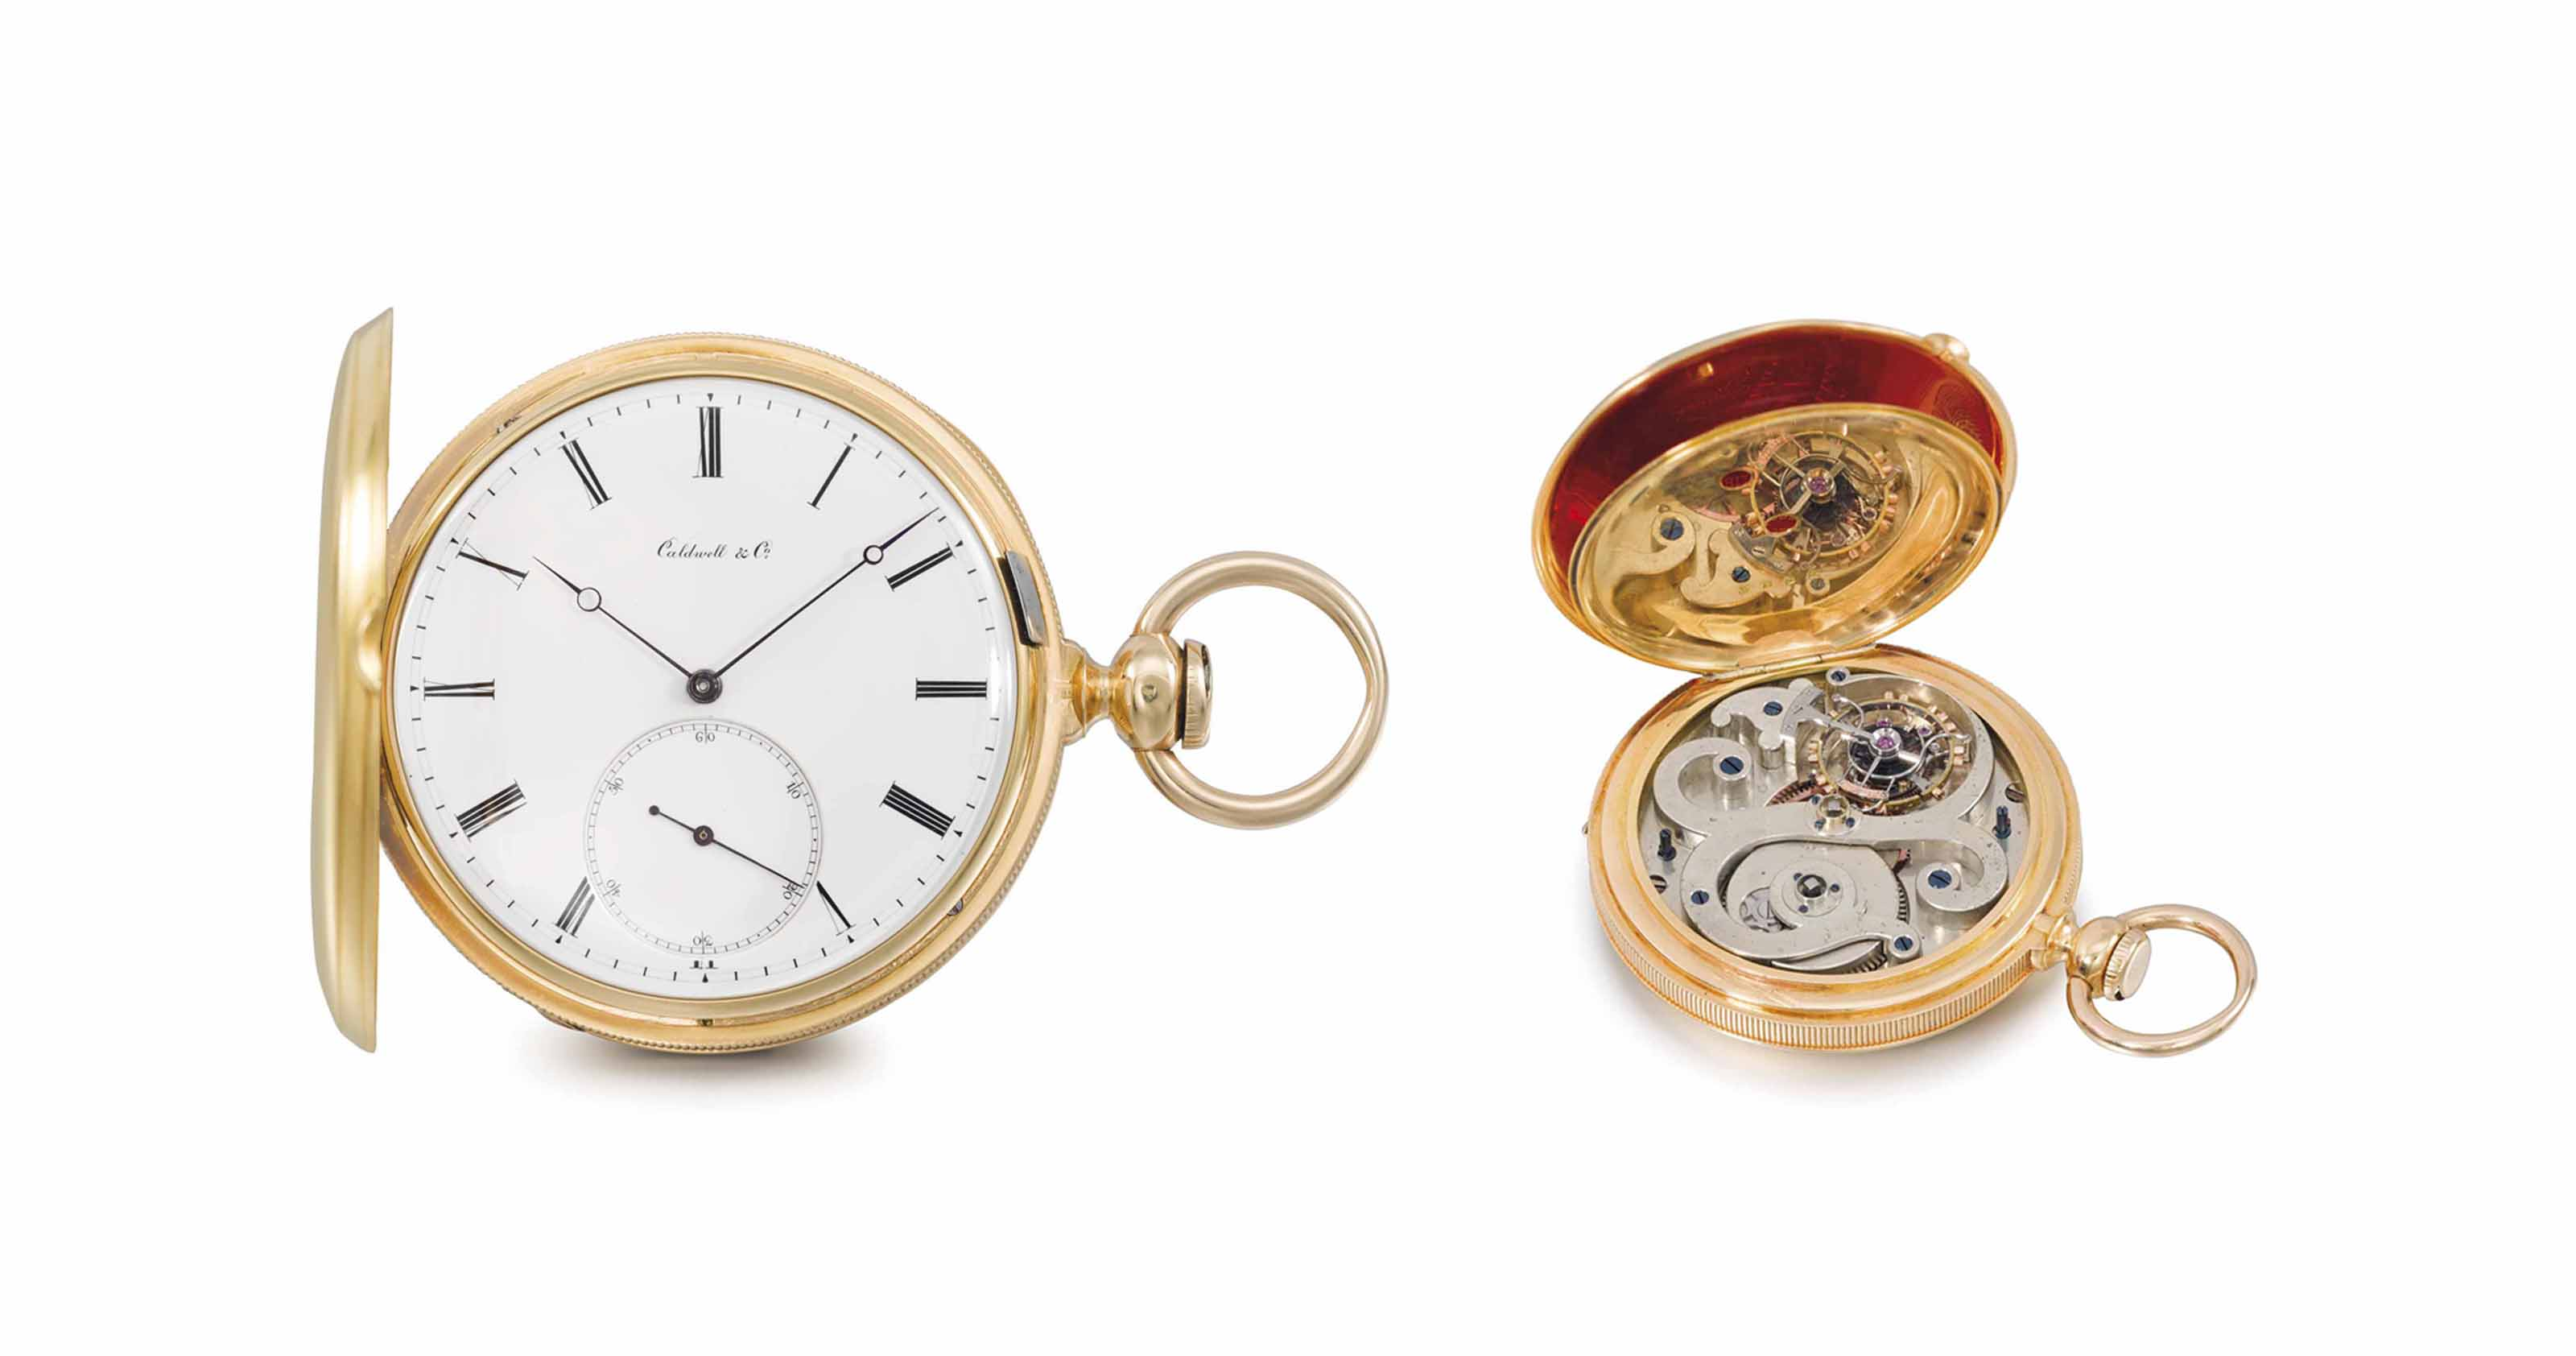 Ernest Guinand made for J.E. Caldwell & Co. A fine and rare 18K gold hunter case keywound pocket chronometer with tourbillon